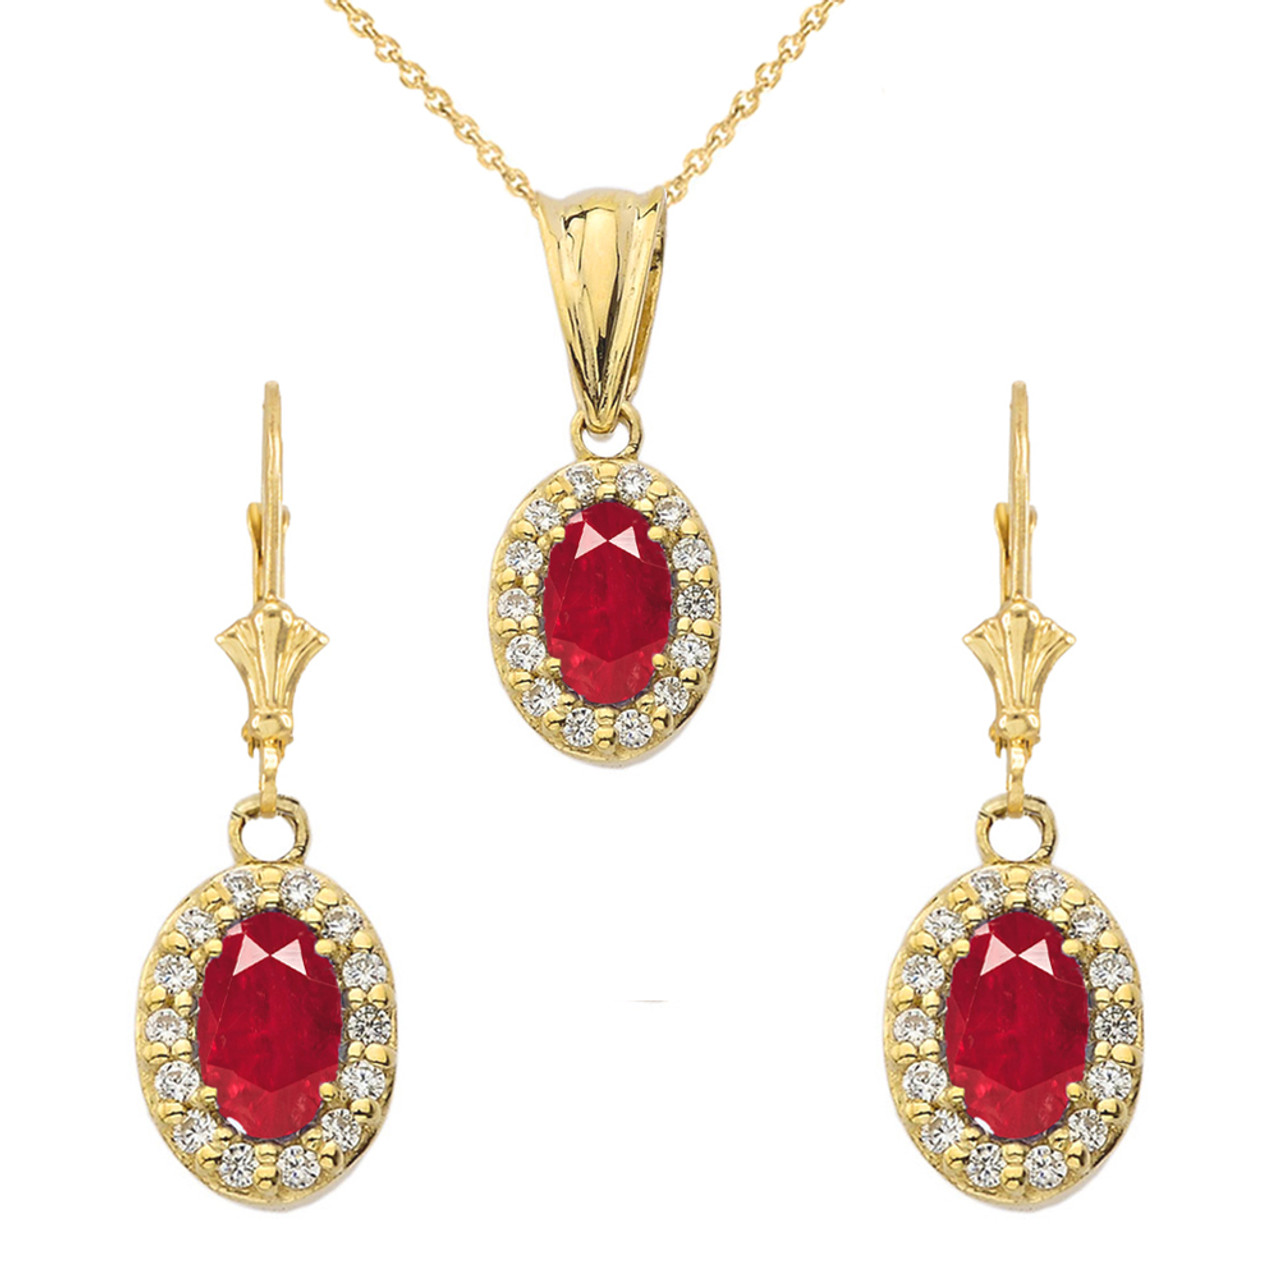 Diamond And Ruby Oval Pendant Necklace And Earrings Set In